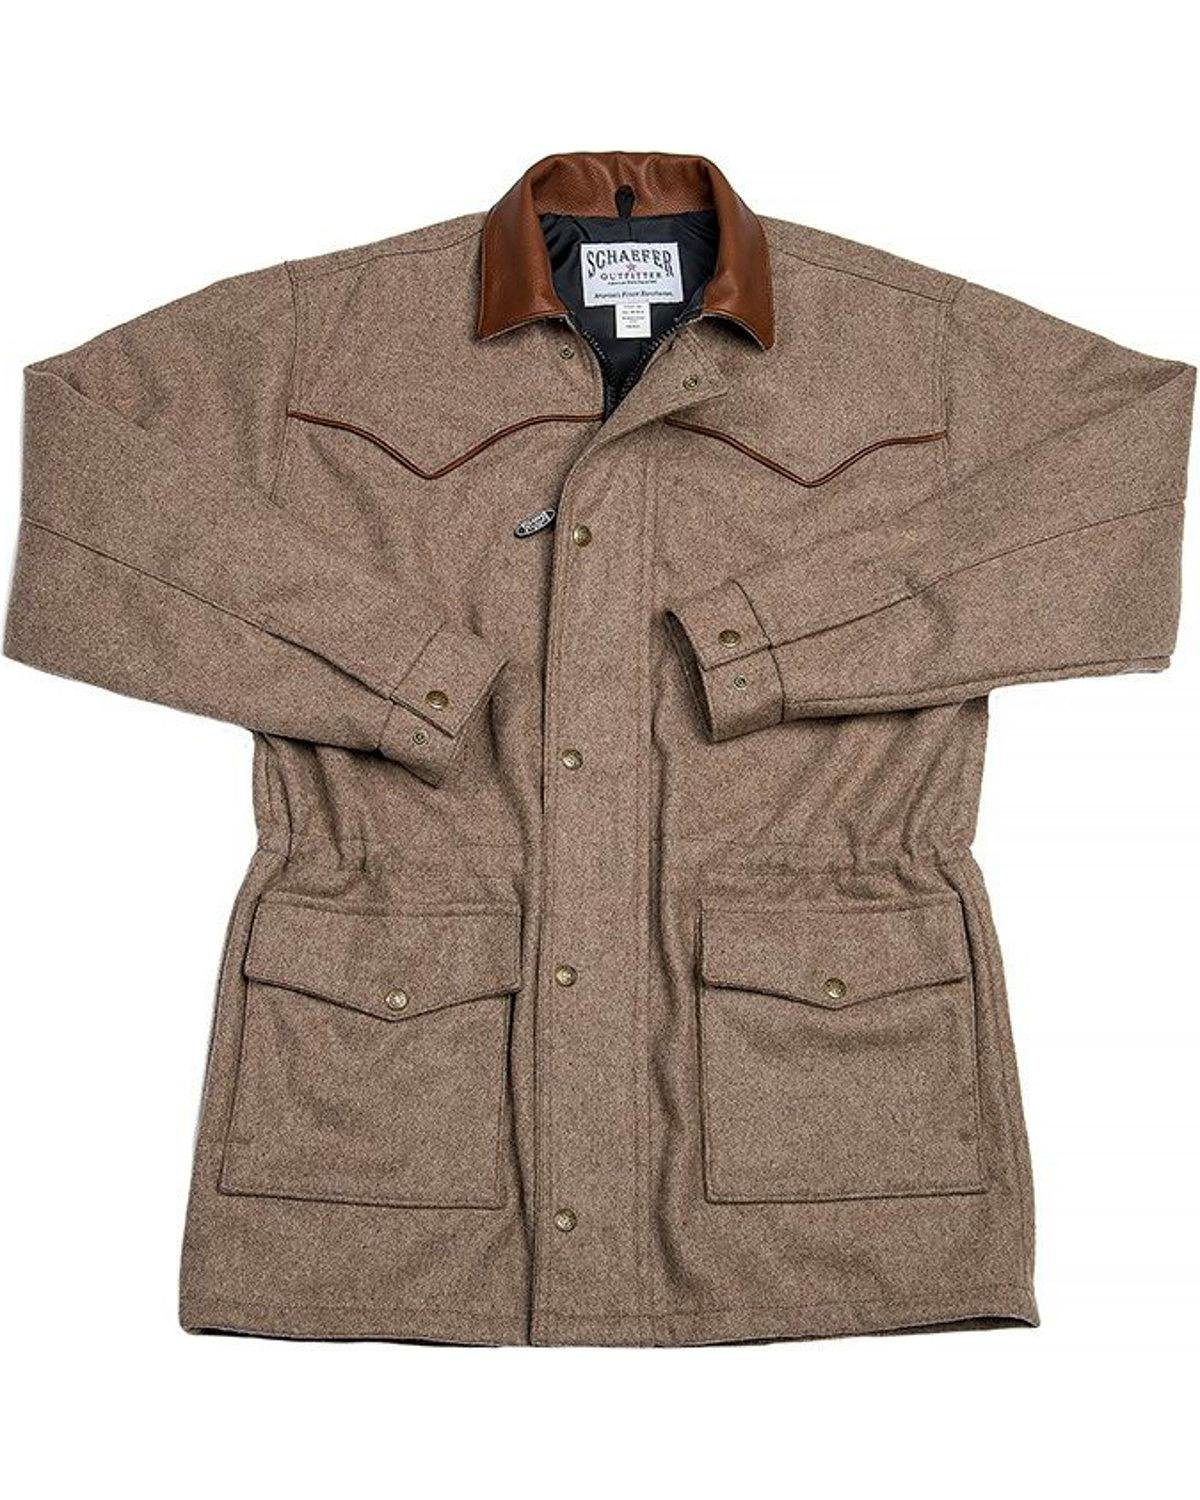 Schaefer Outfitter Men's 220 Wool Big Country Rancher Coat Taupe Large